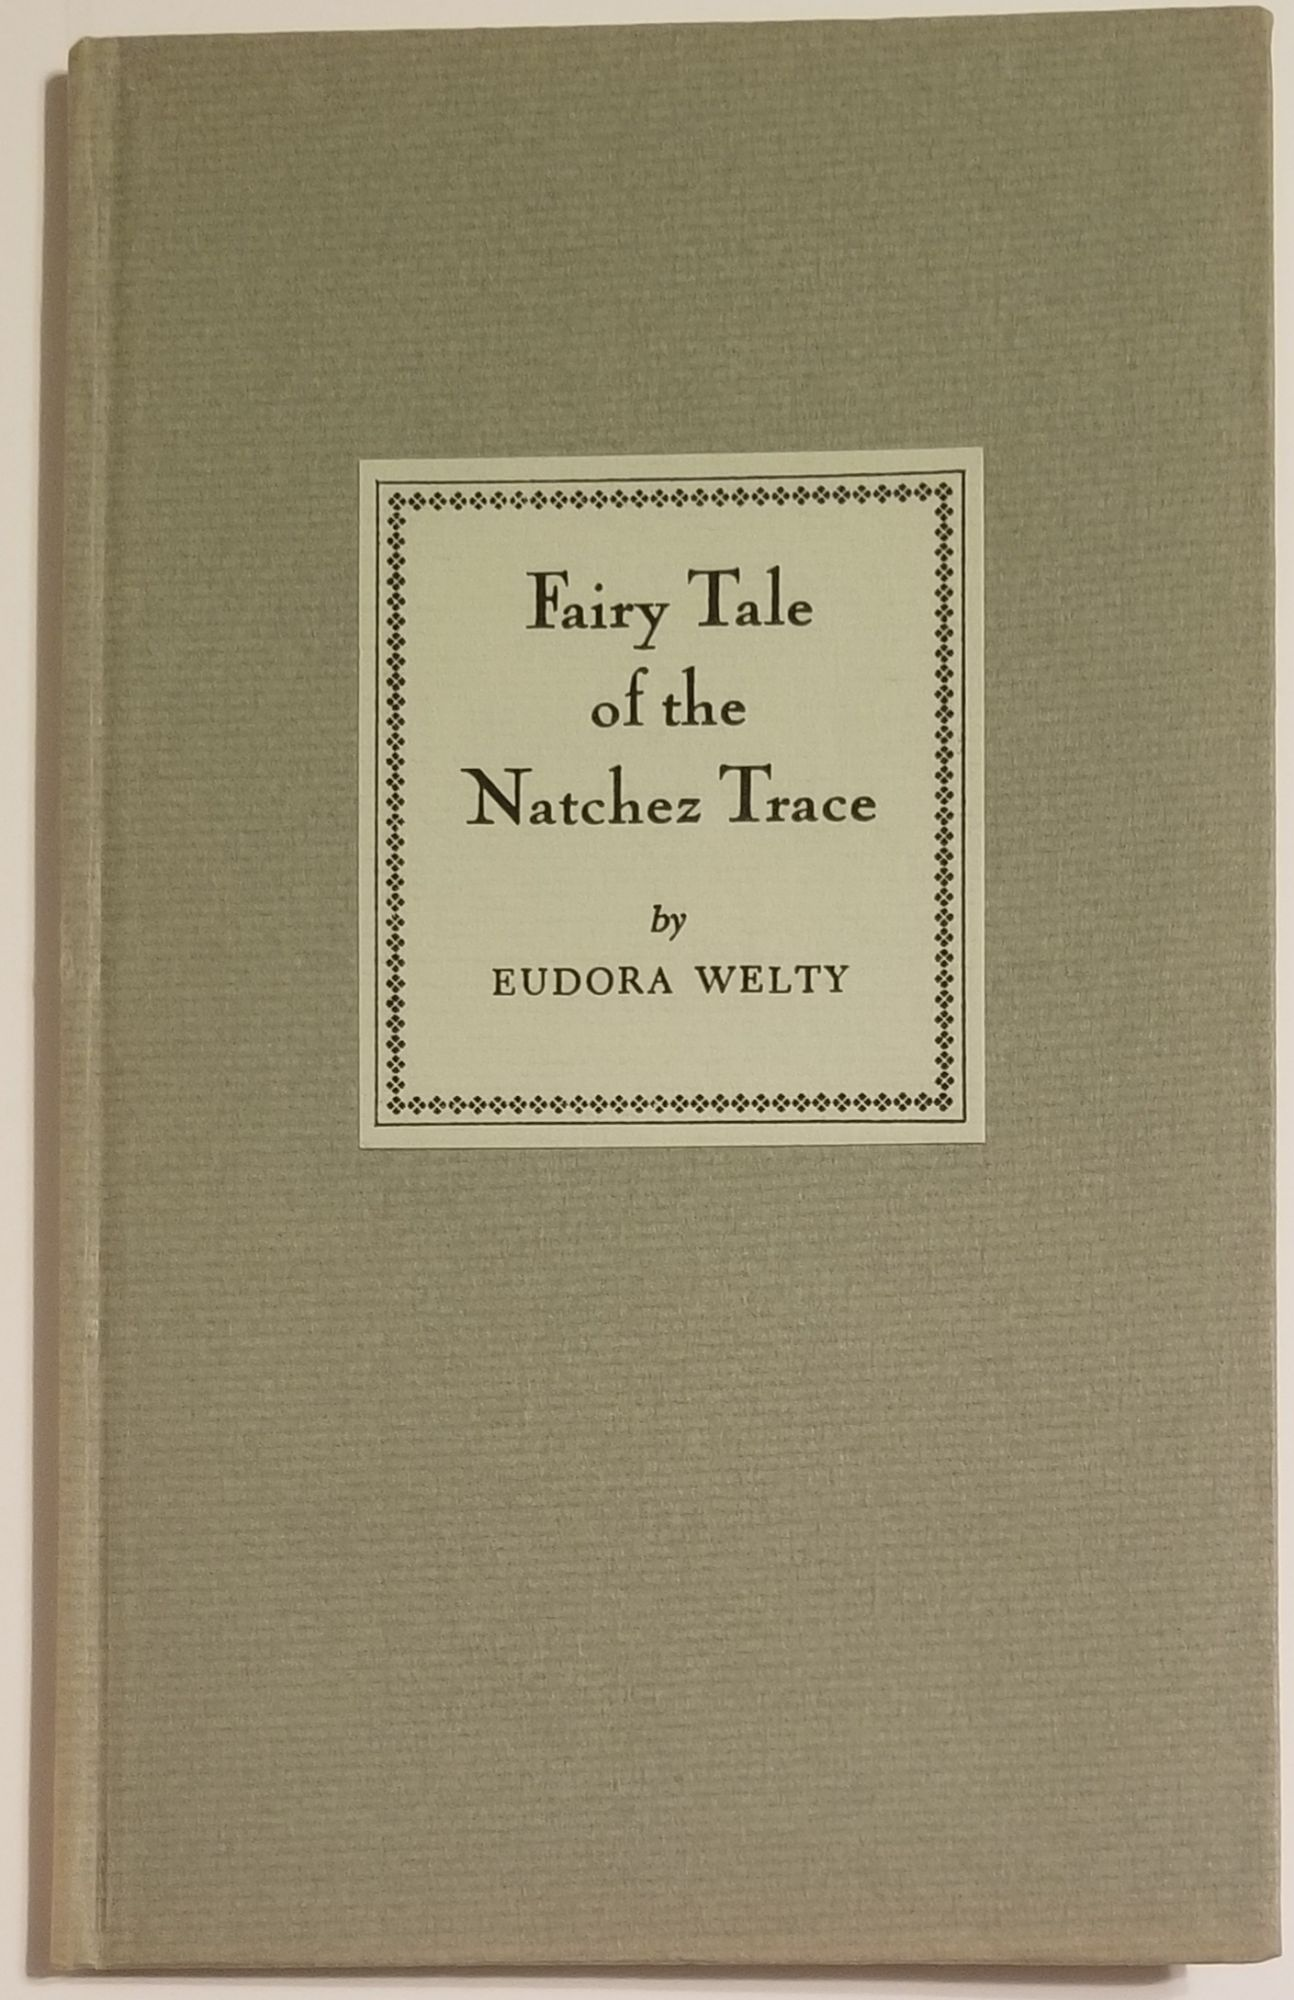 FAIRY TALE OF THE NATCHEZ TRACE. Eudora Welty.